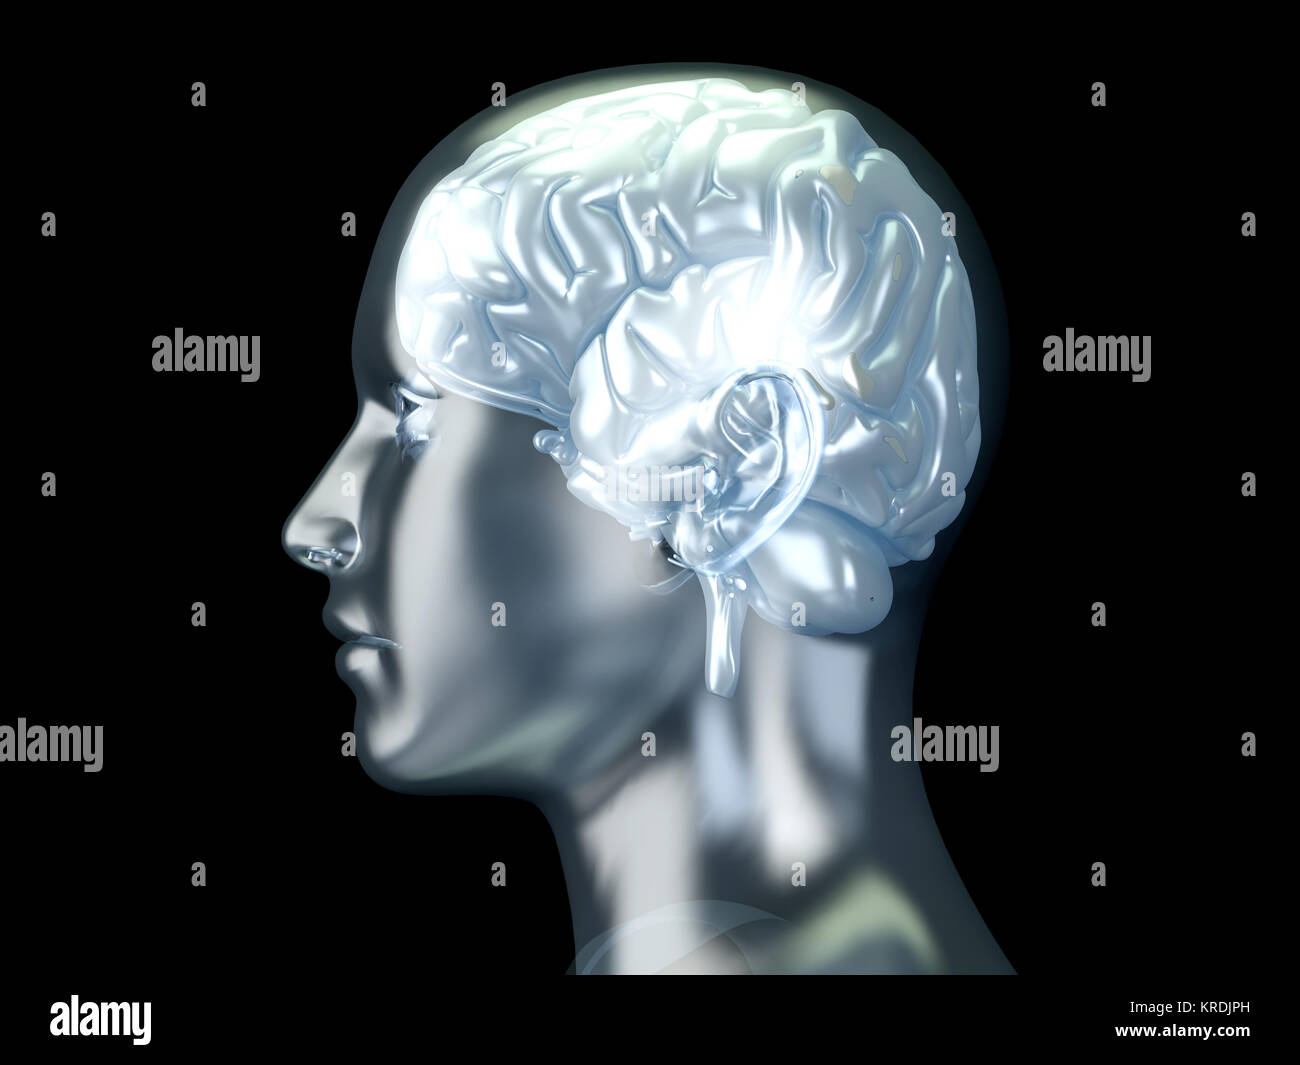 The Human Brain. 3D rendered anatomical illustration. Stock Photo